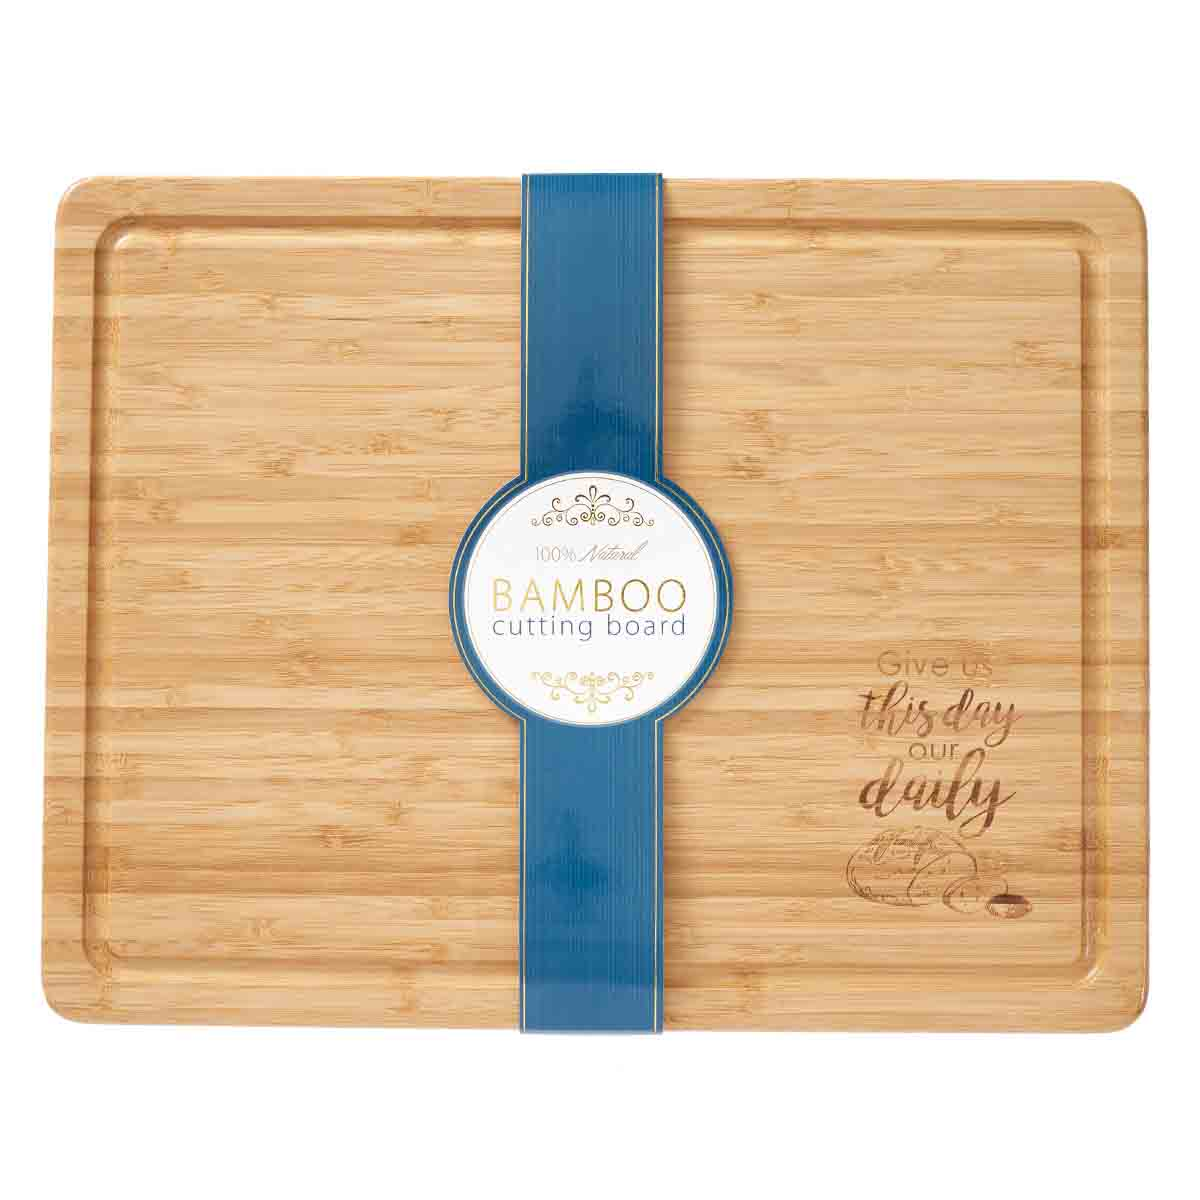 Give Us This Day (Bamboo Cutting Board)